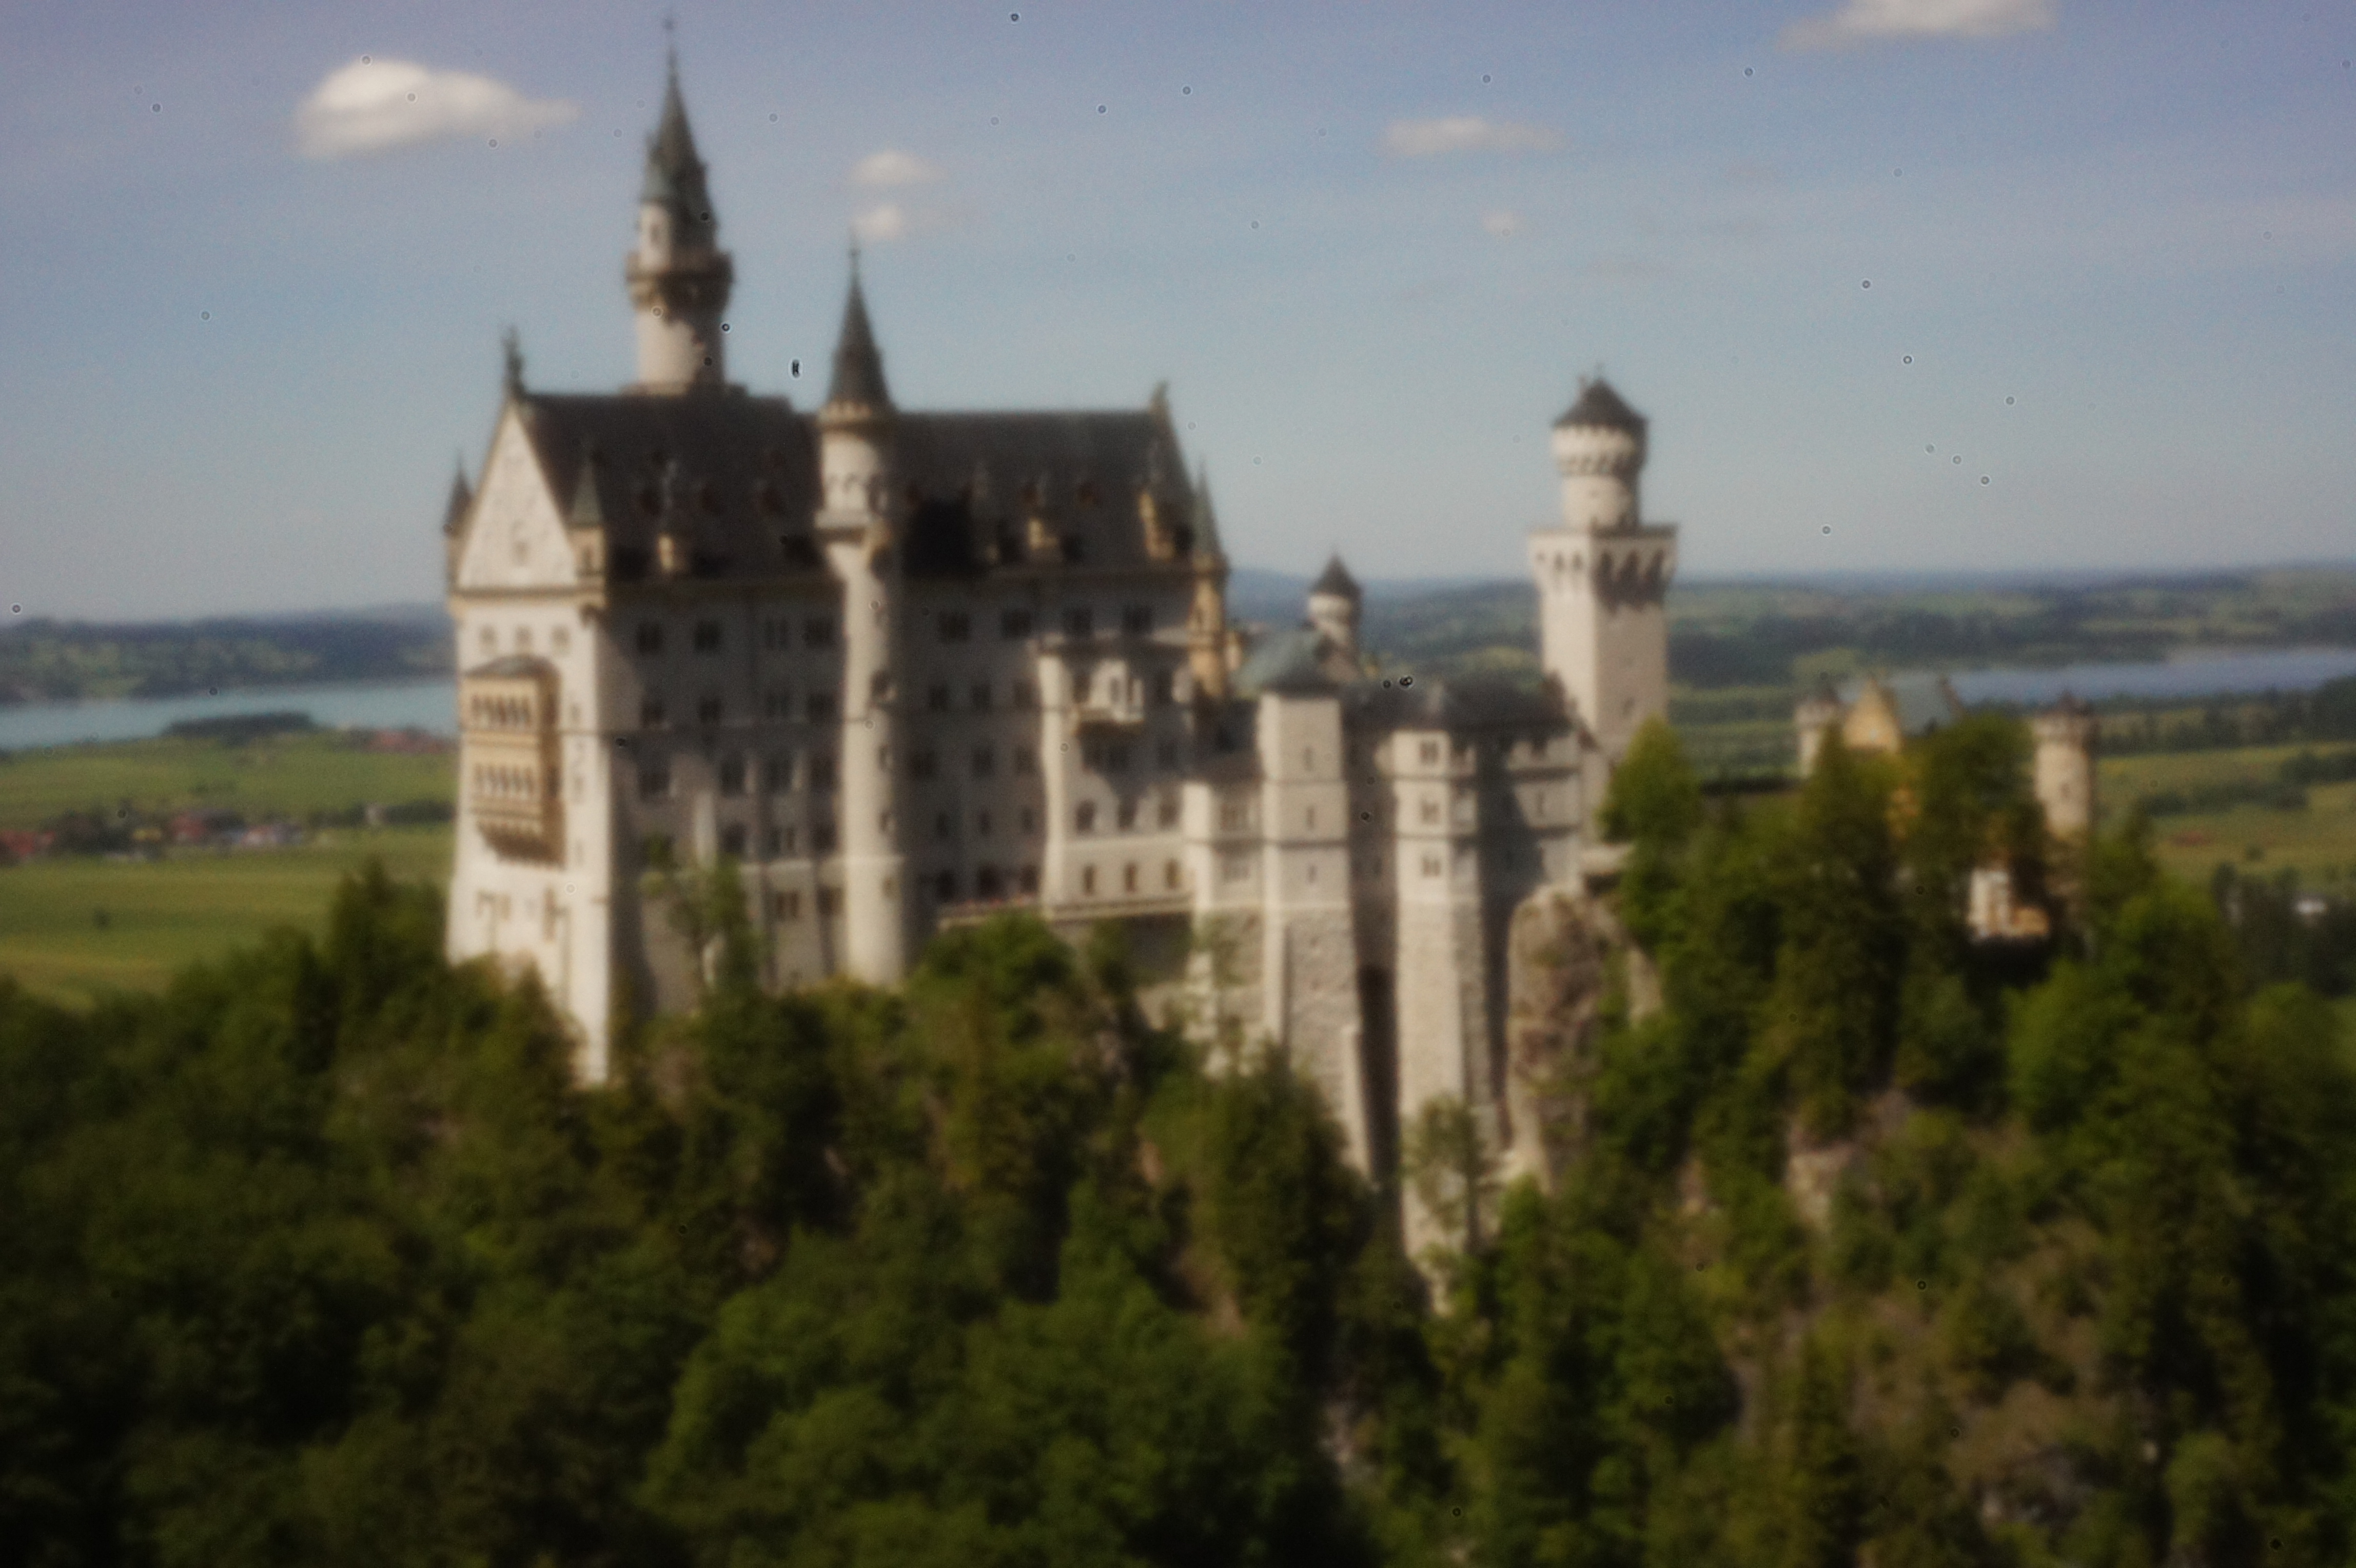 Allgu in Bavaria &#8211; home of Neuschwanstein castle and Skink Pinhole Pancake